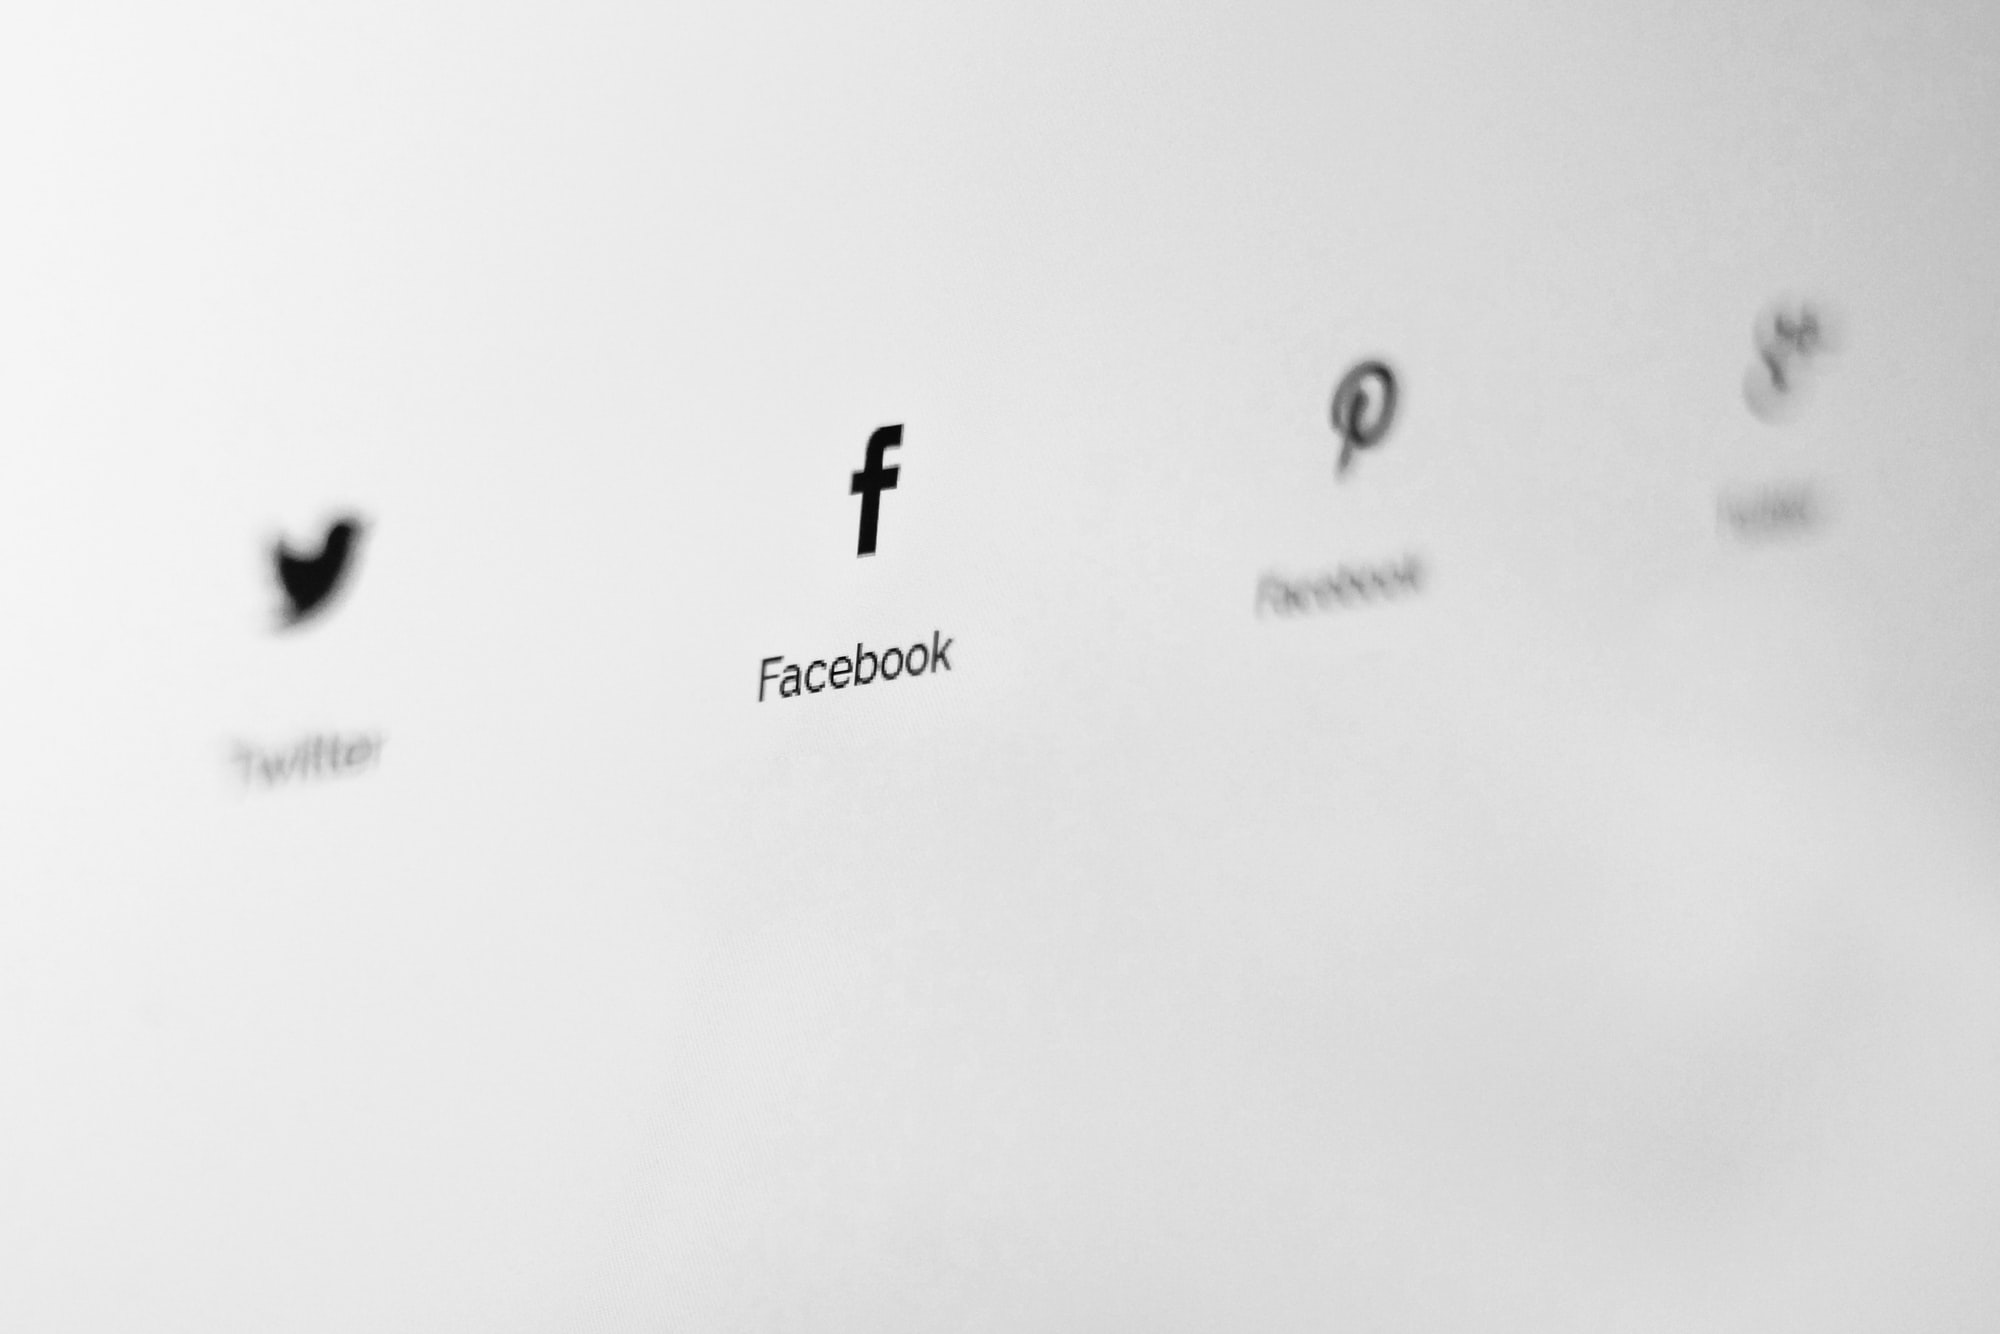 Twitter vs Facebook: Which is Best for Your Business?